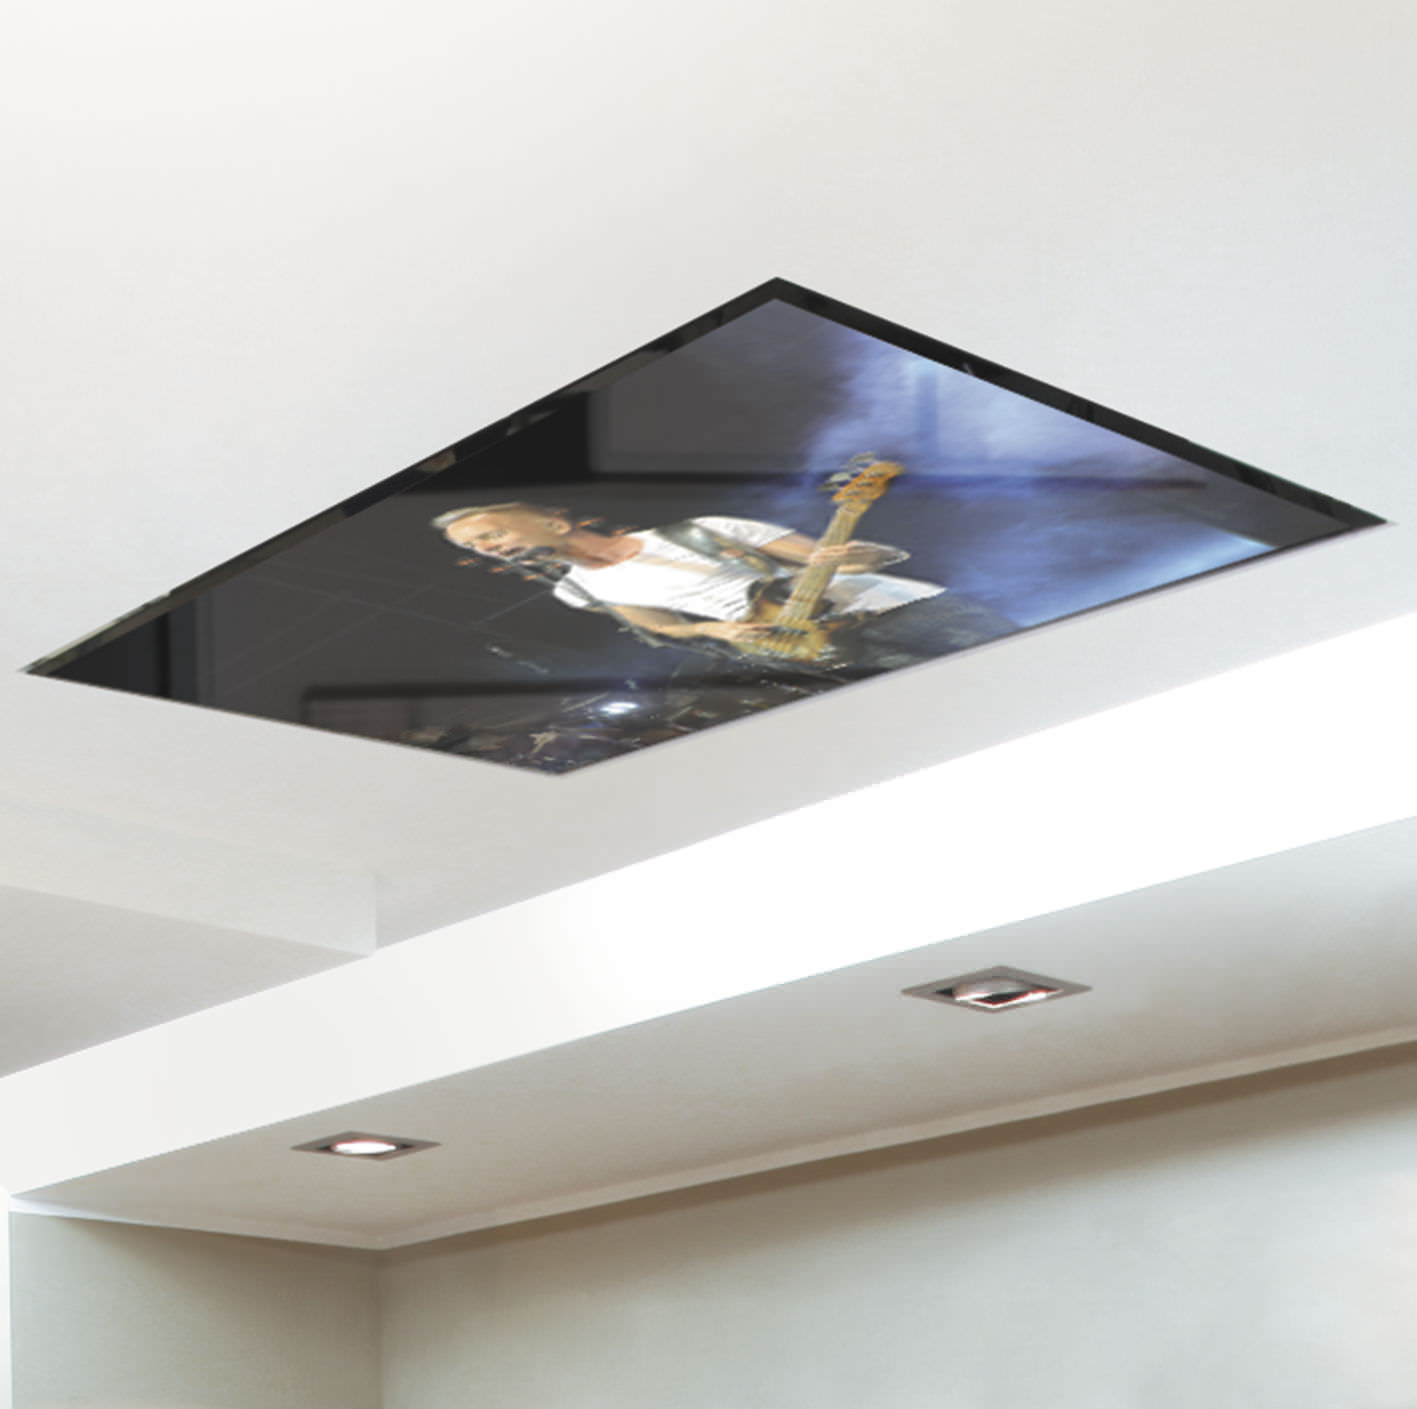 https://img.archiexpo.com/images_ae/photo-g/remote-controlled-tv-ceiling-mount-motorised-ceiling-108527-7497895.jpg